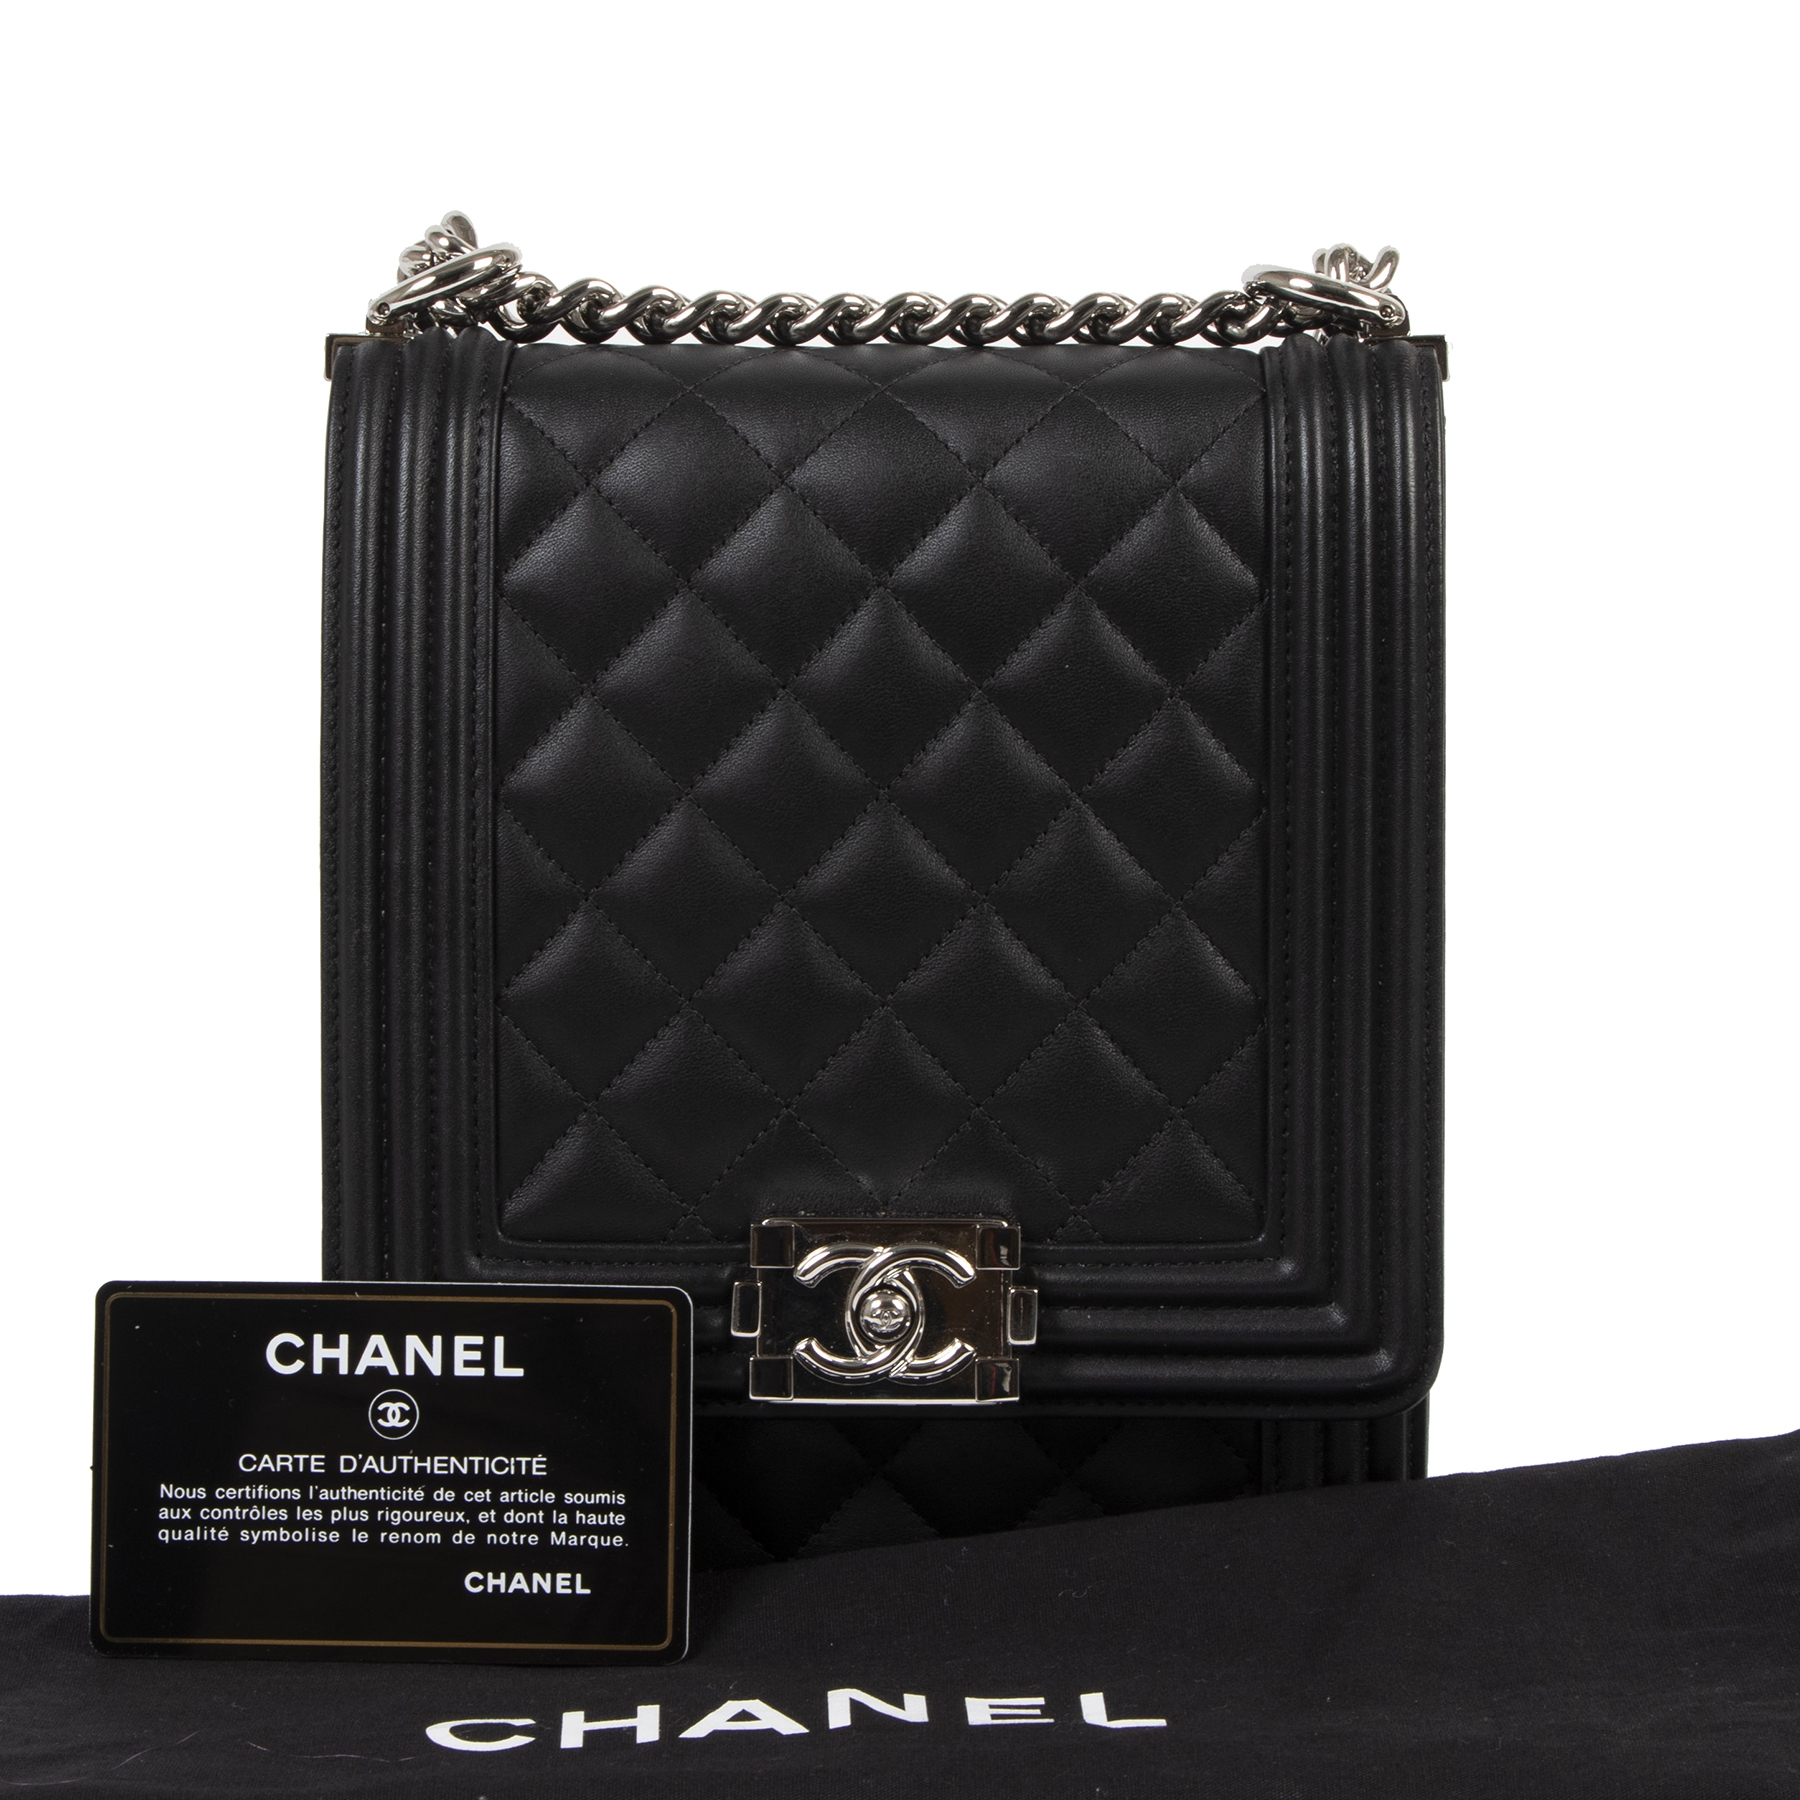 Authentic secondhand Chanel Black Vertical Boy Bag Large designer bags designer brands fashion luxury vintage webshop safe secure online shopping